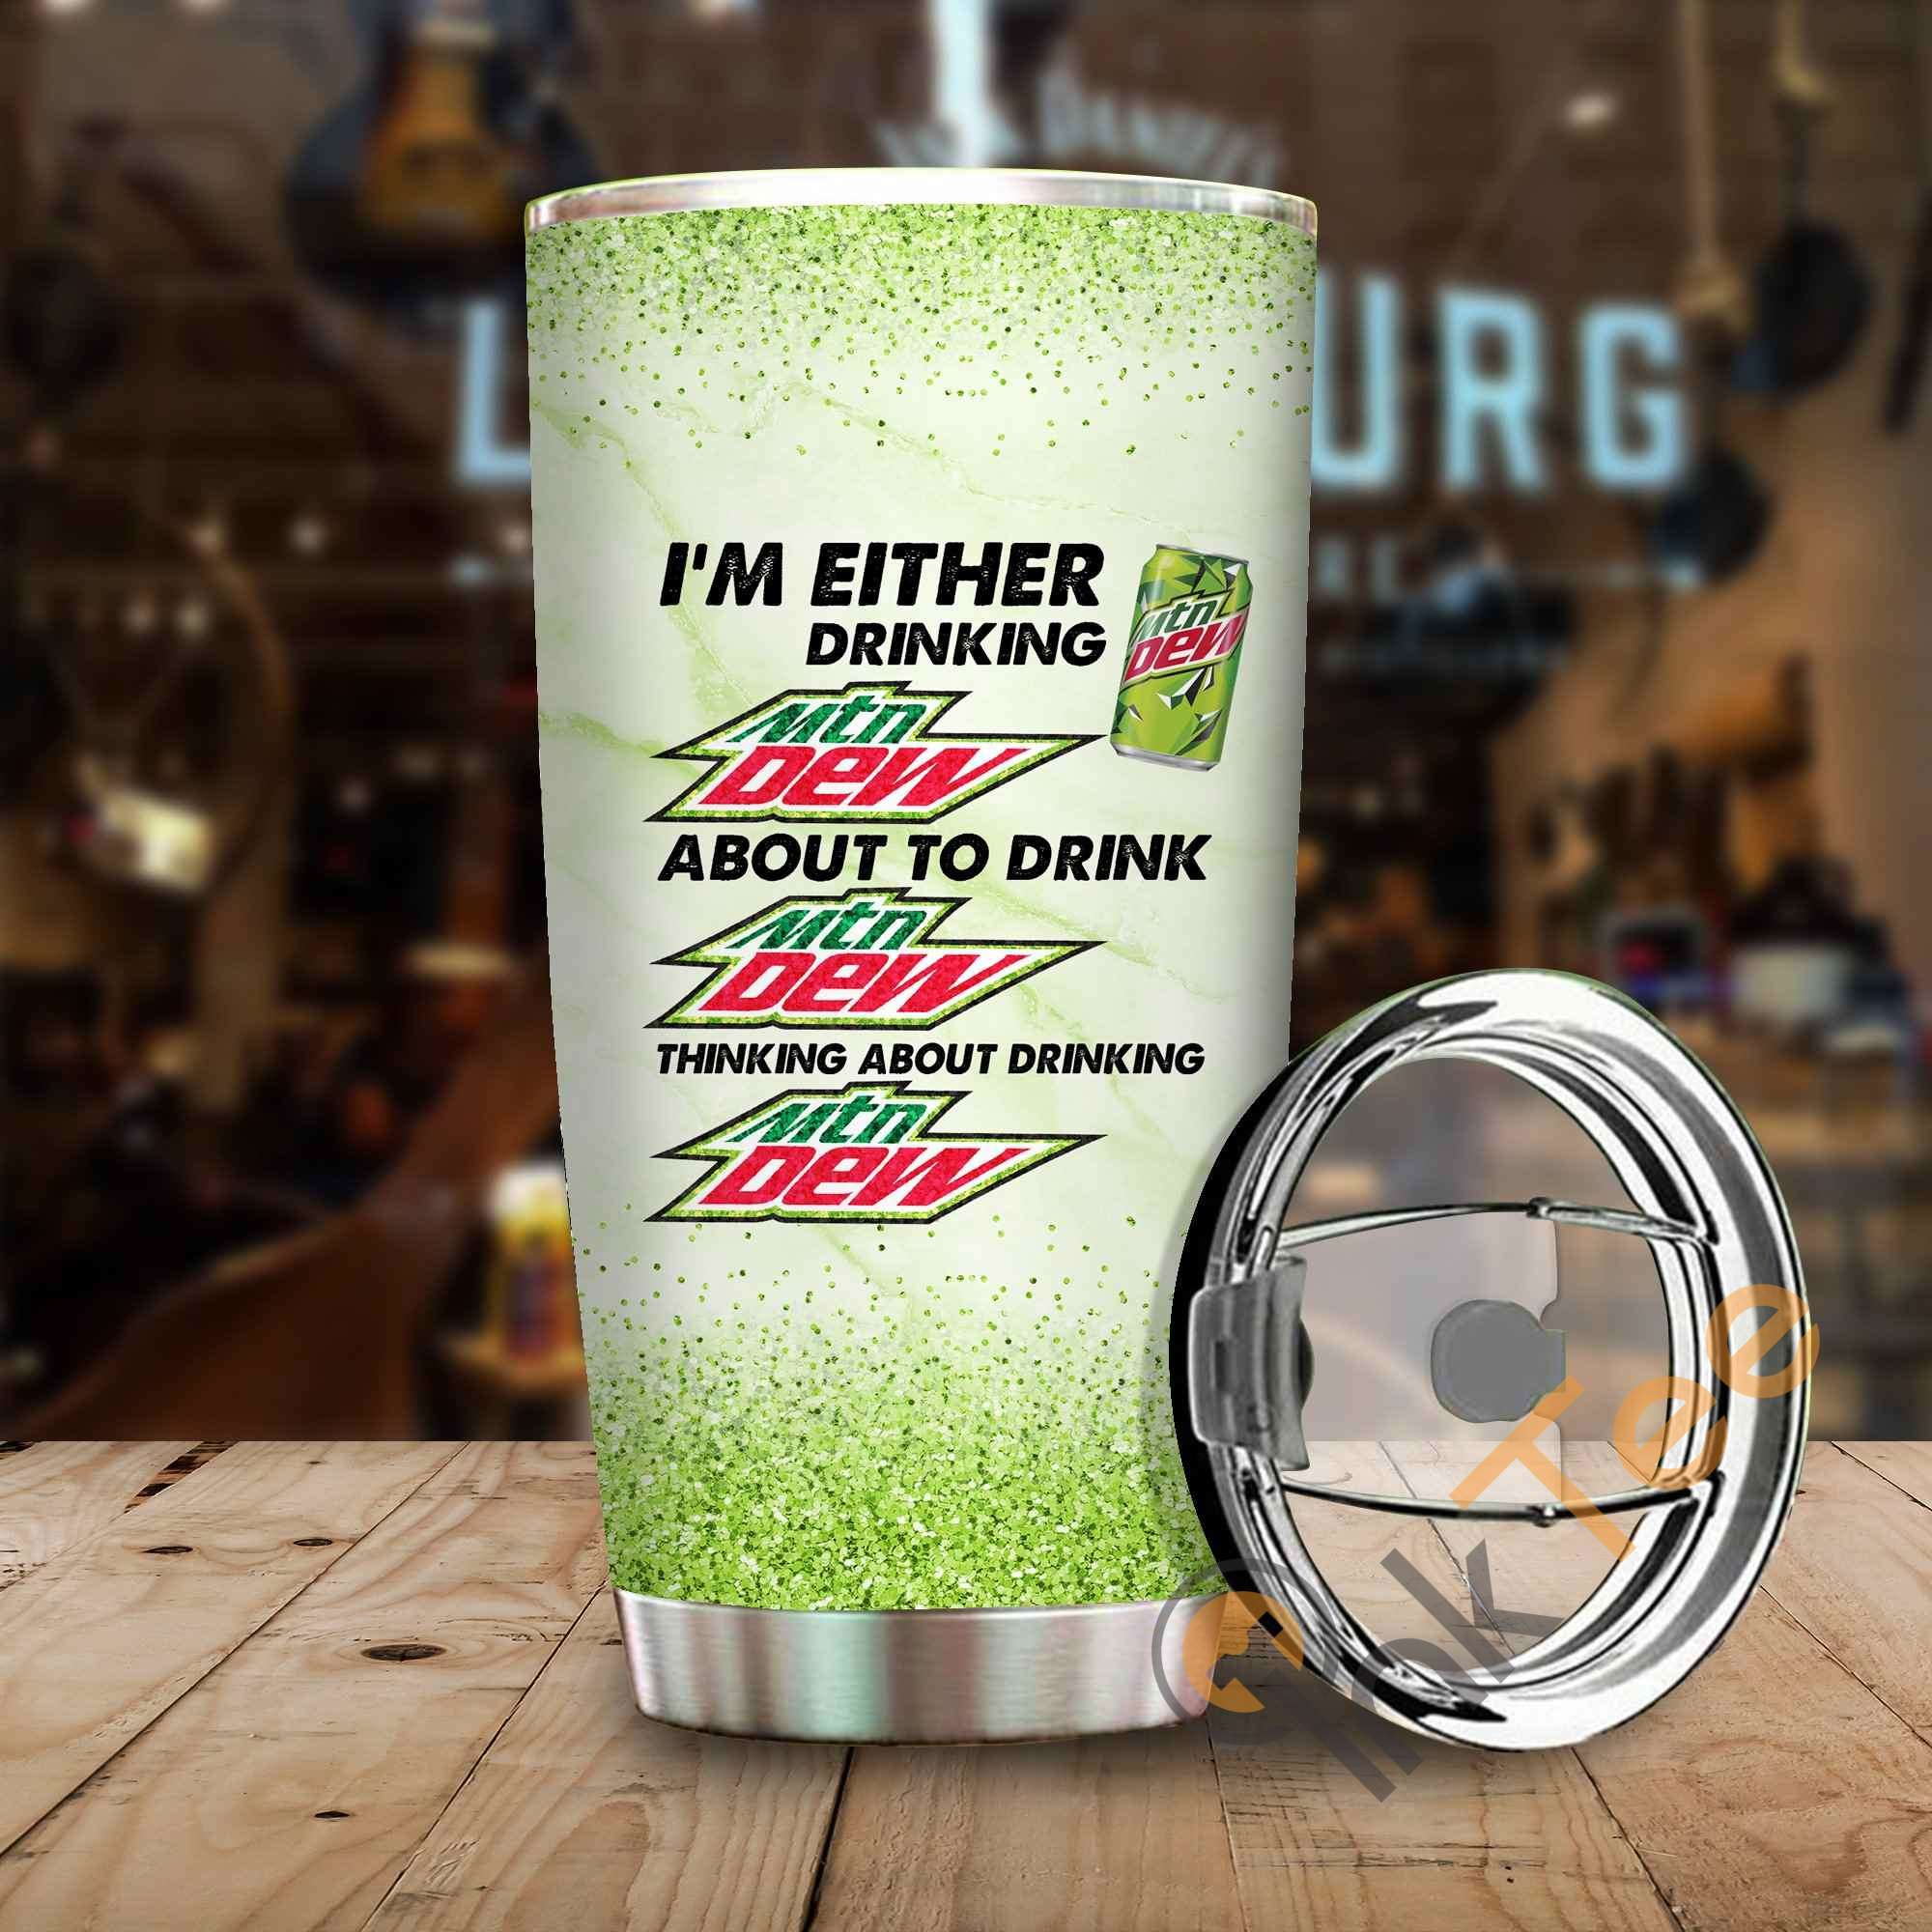 Im Either Drinking Mtn Dew Amazon Best Seller Sku 4023 Stainless Steel Tumbler